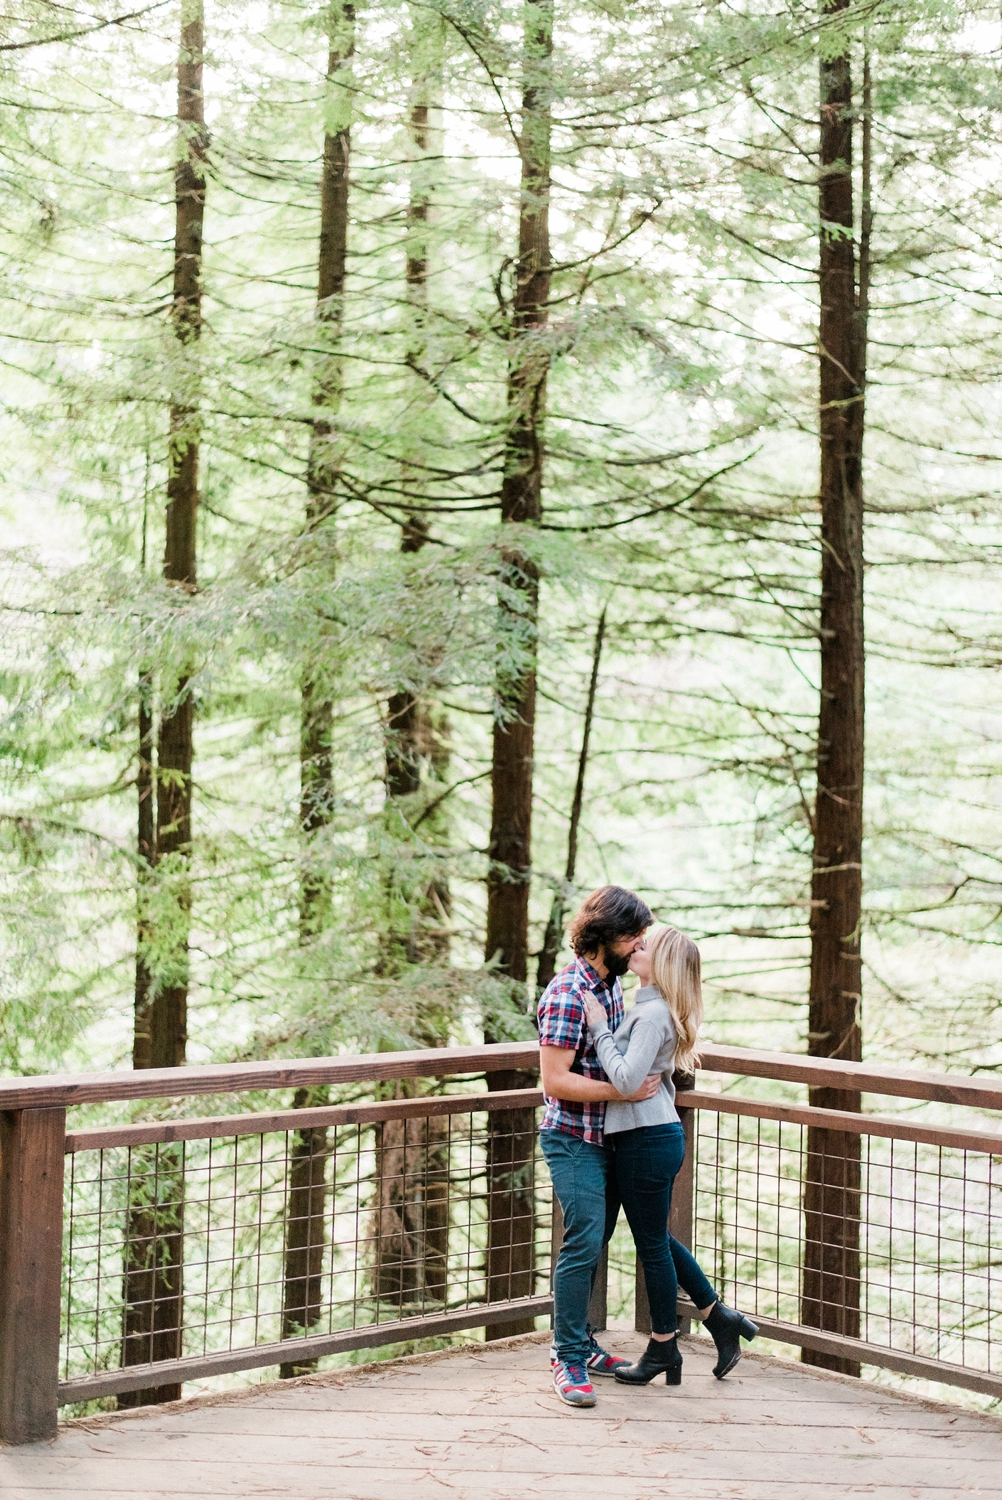 washington-park-portland-engagement-photos-hoyt-arboretum-shelley-marie-photo-195_cr.jpg